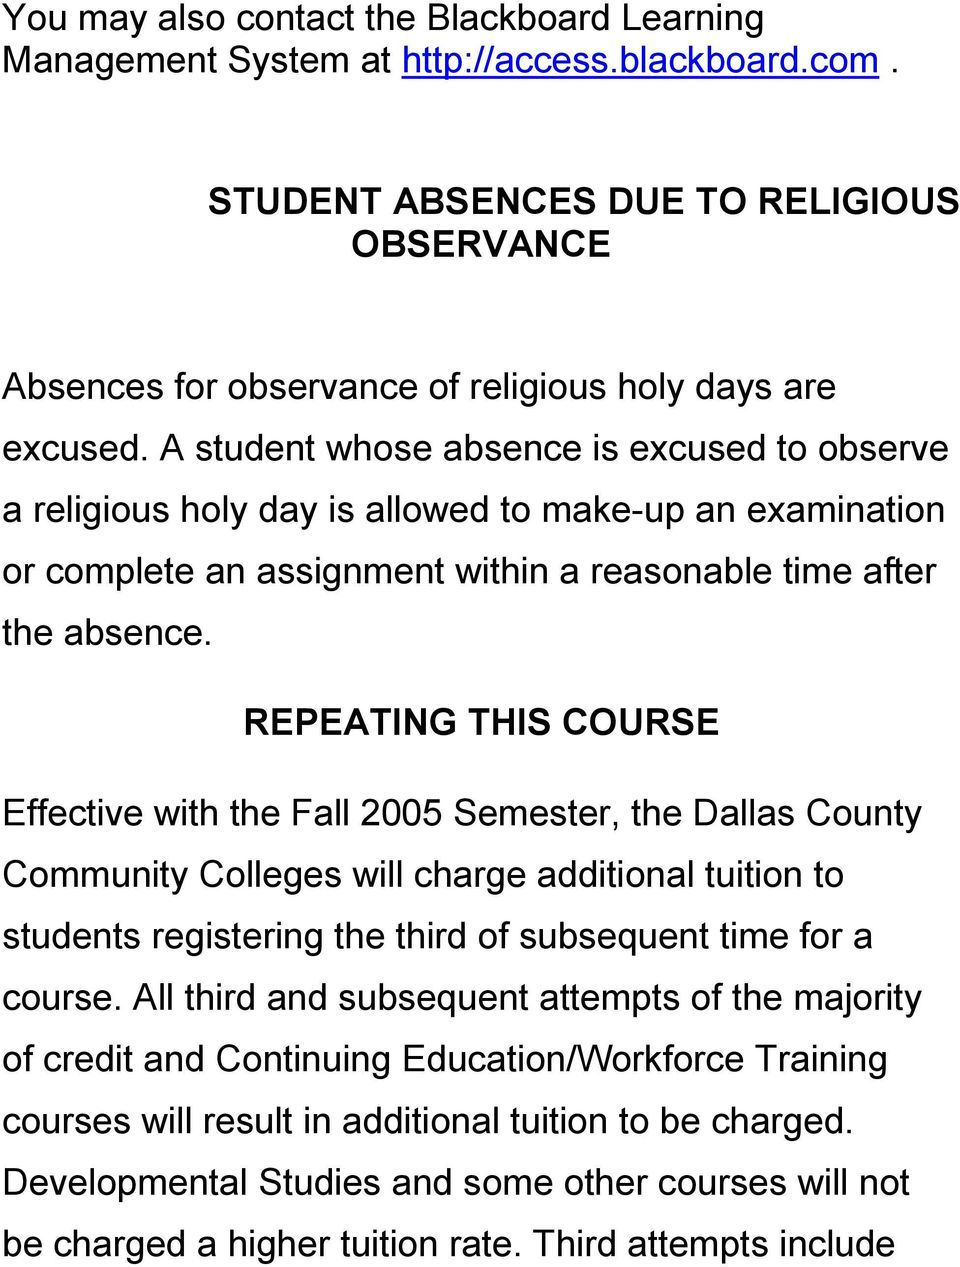 REPEATING THIS COURSE Effective with the Fall 2005 Semester, the Dallas County Community Colleges will charge additional tuition to students registering the third of subsequent time for a course.